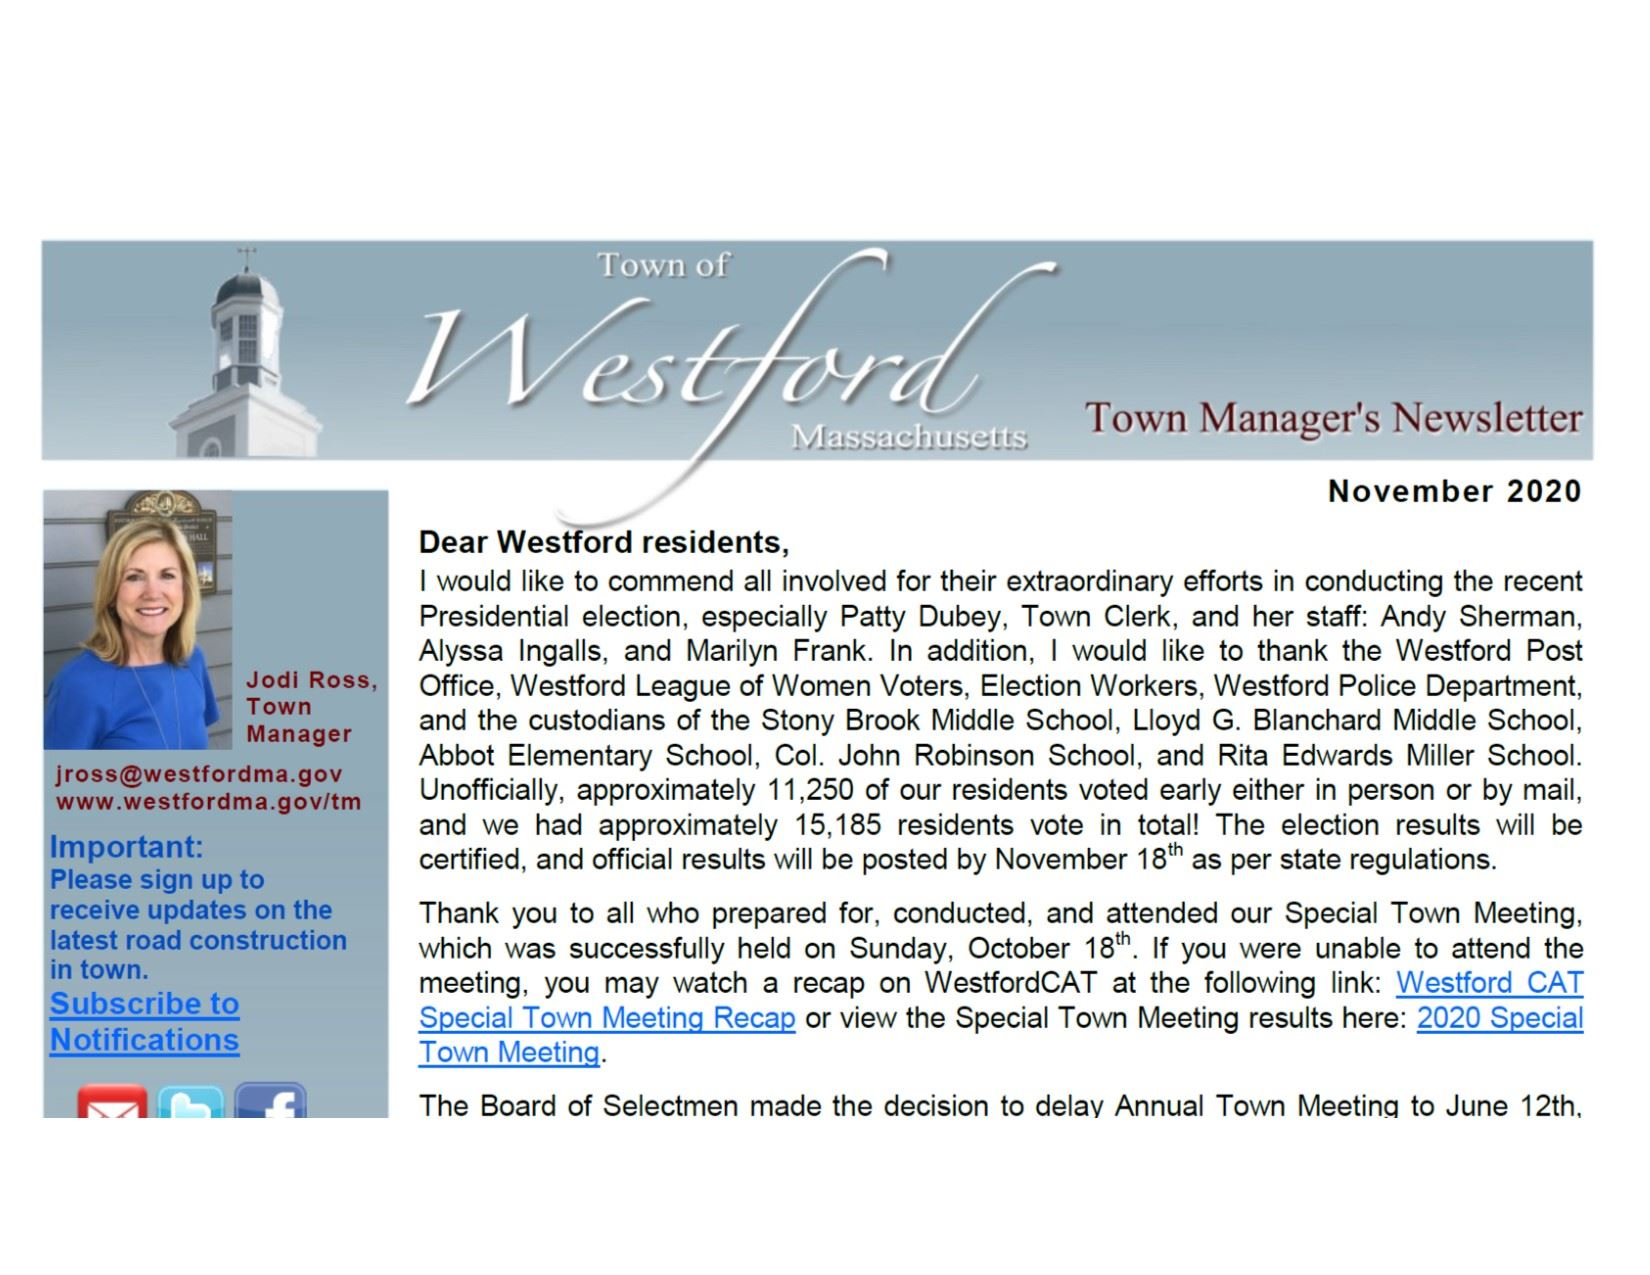 Westford Town Manager's November 2020 Newsletter